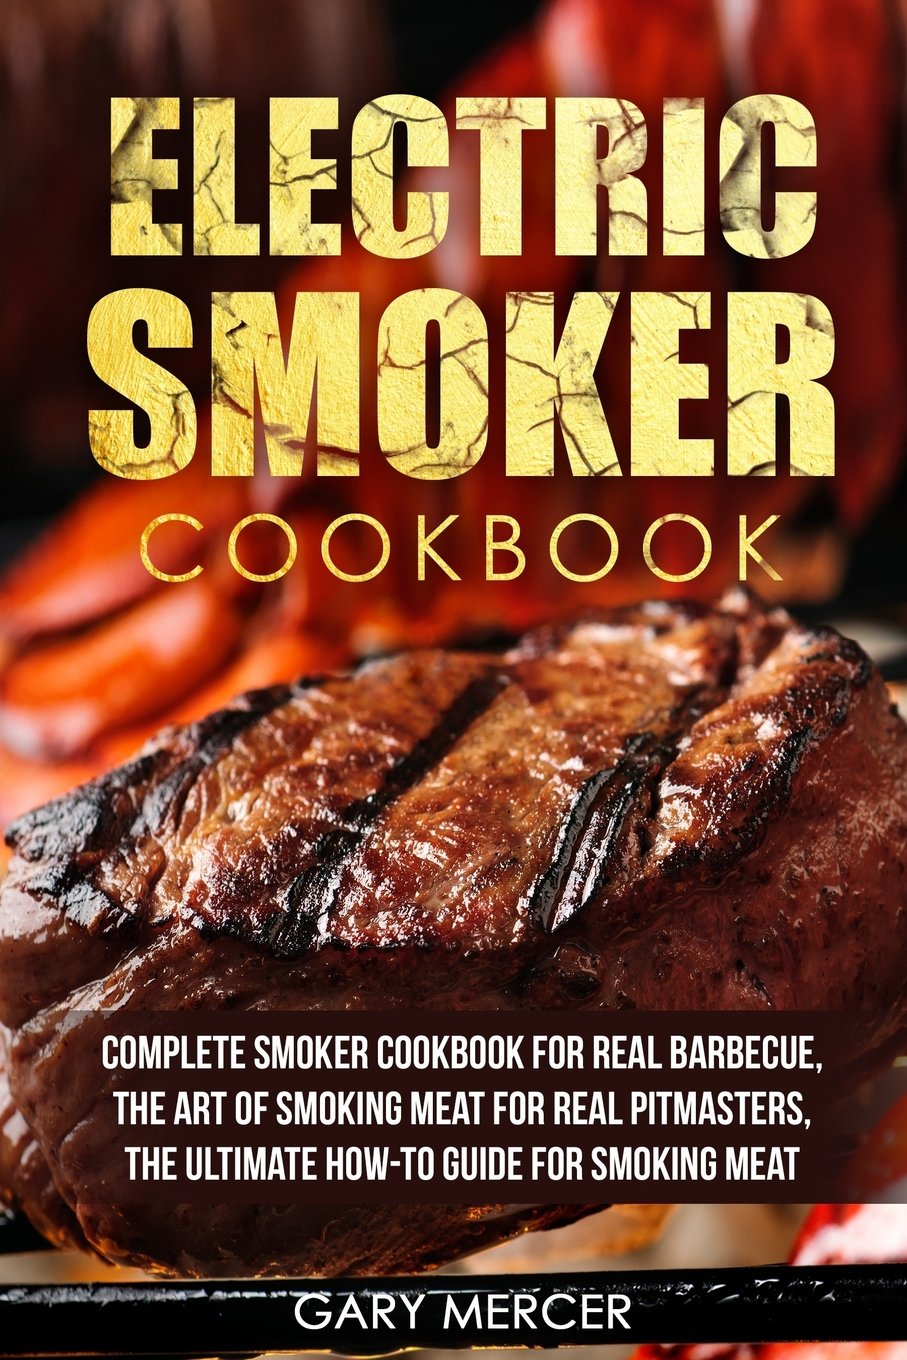 Electric Smoker Cookbook Pitmasters How product image